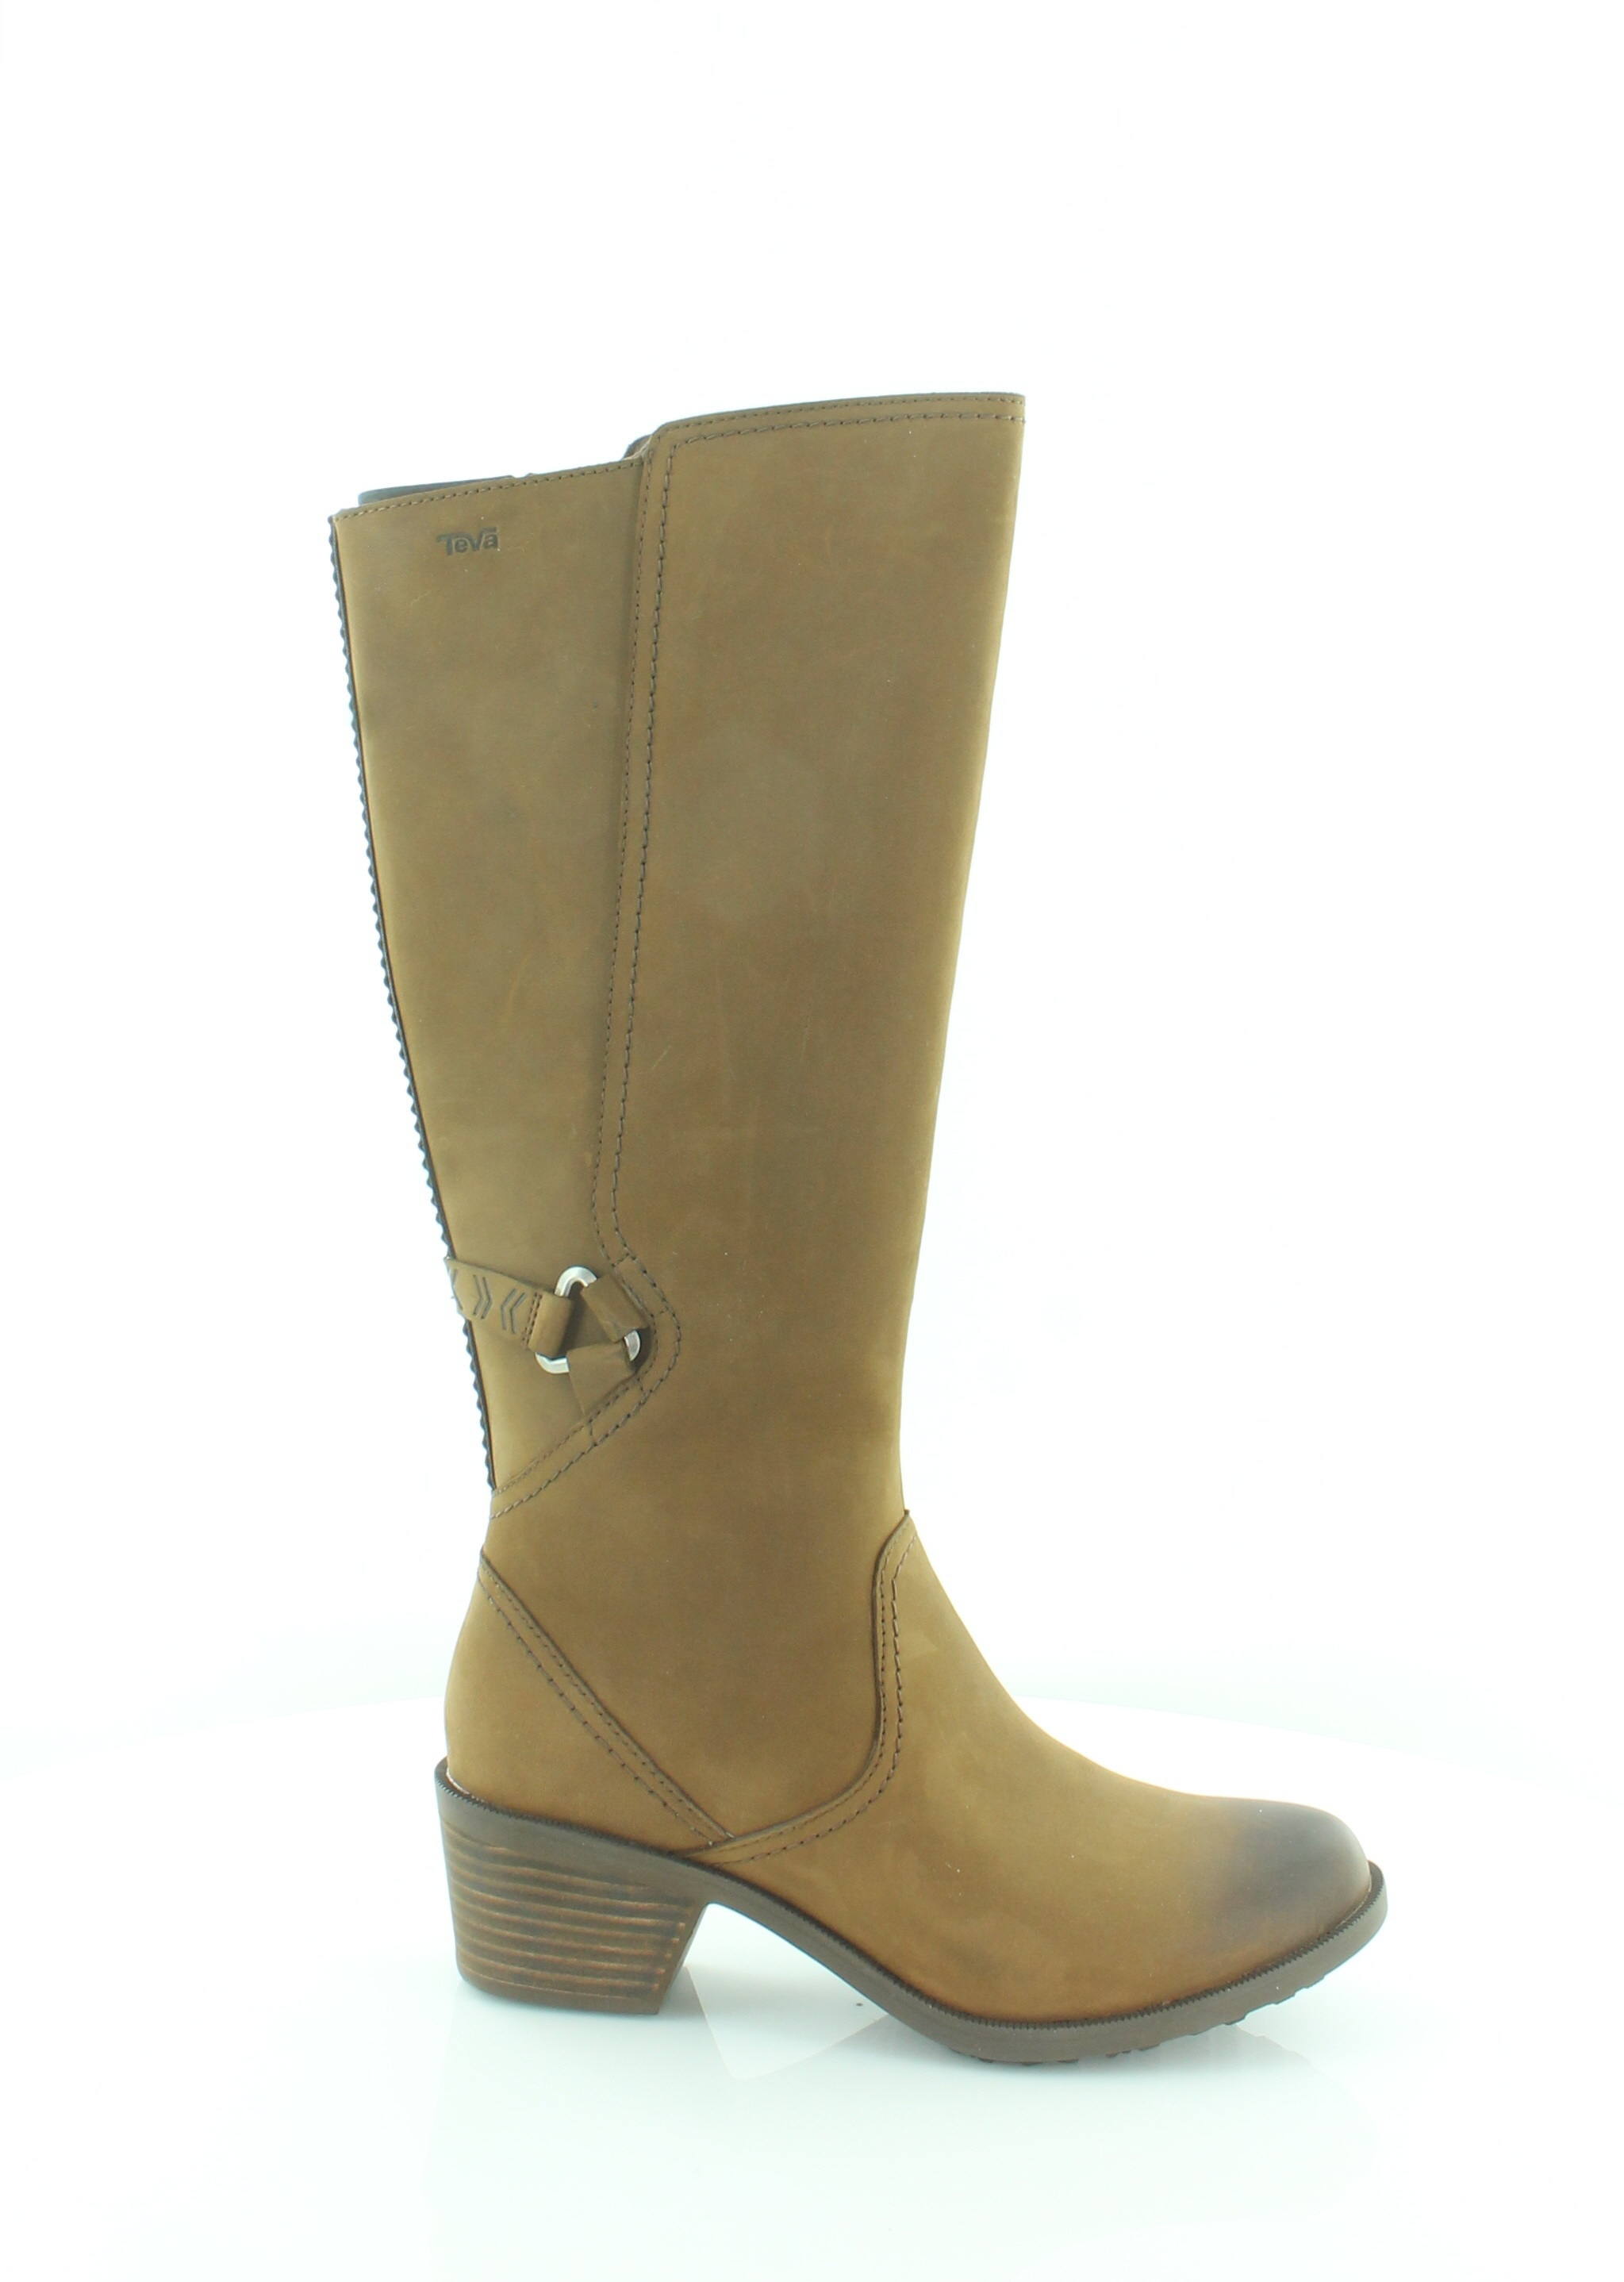 Teva Foxy Brown Womens Shoes Size 6.5 M Boots MSRP $190